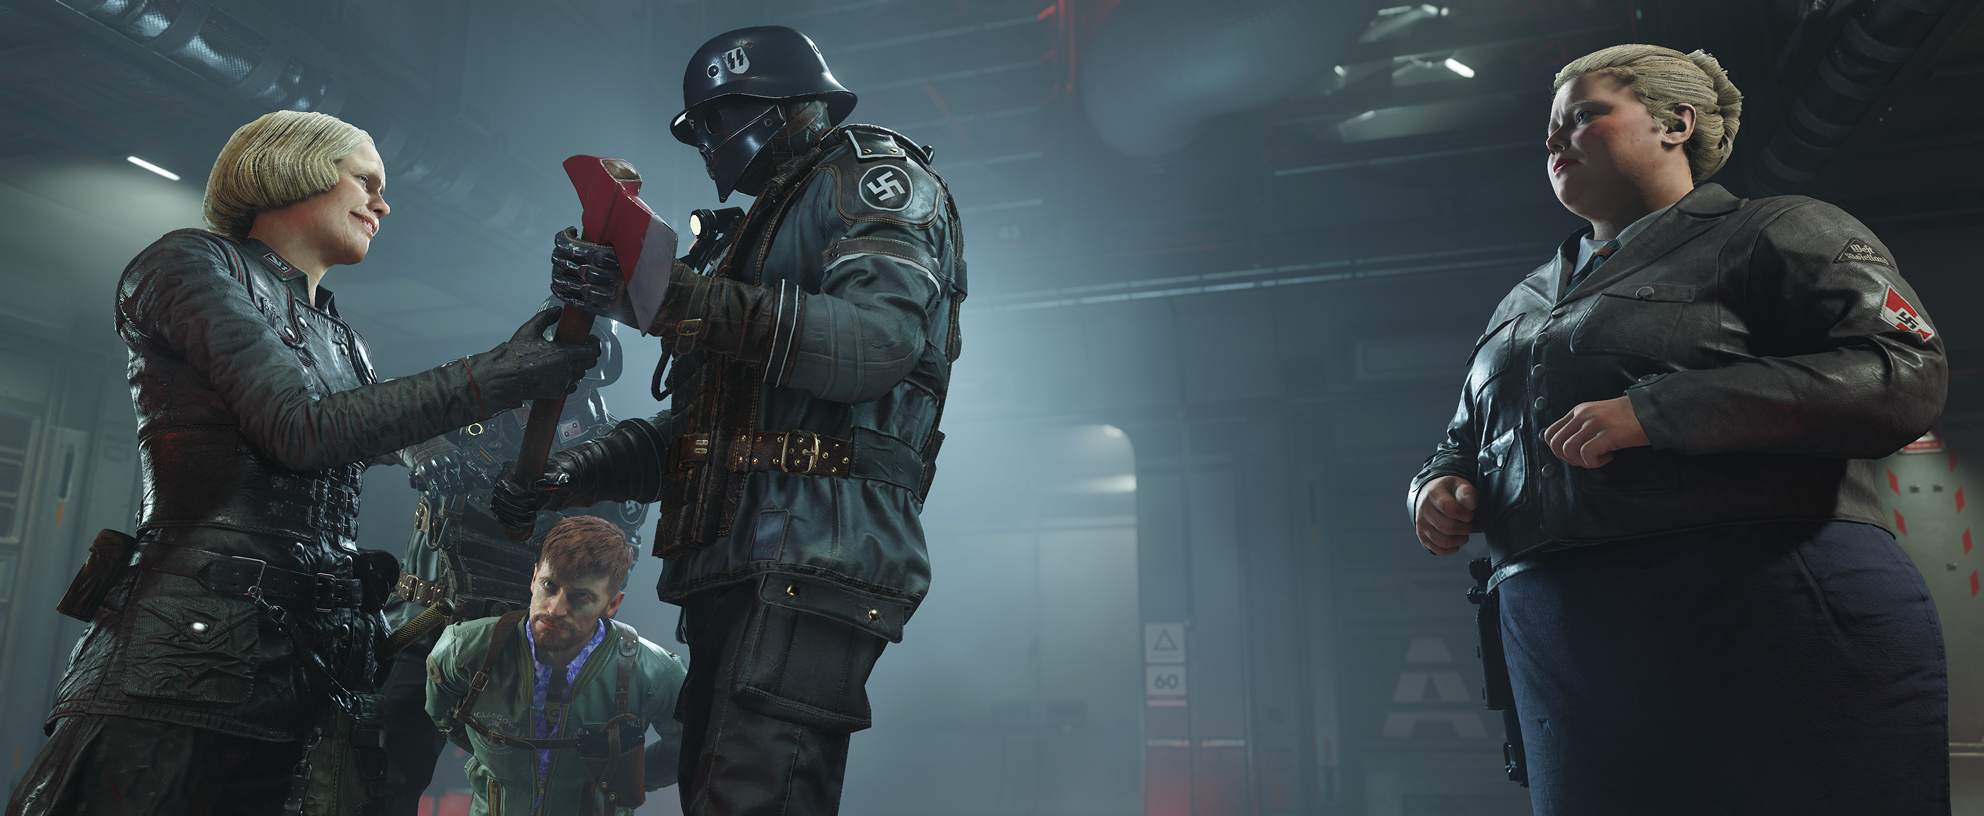 Wolfenstein II looks absolutely stunning in motion – especially on PC